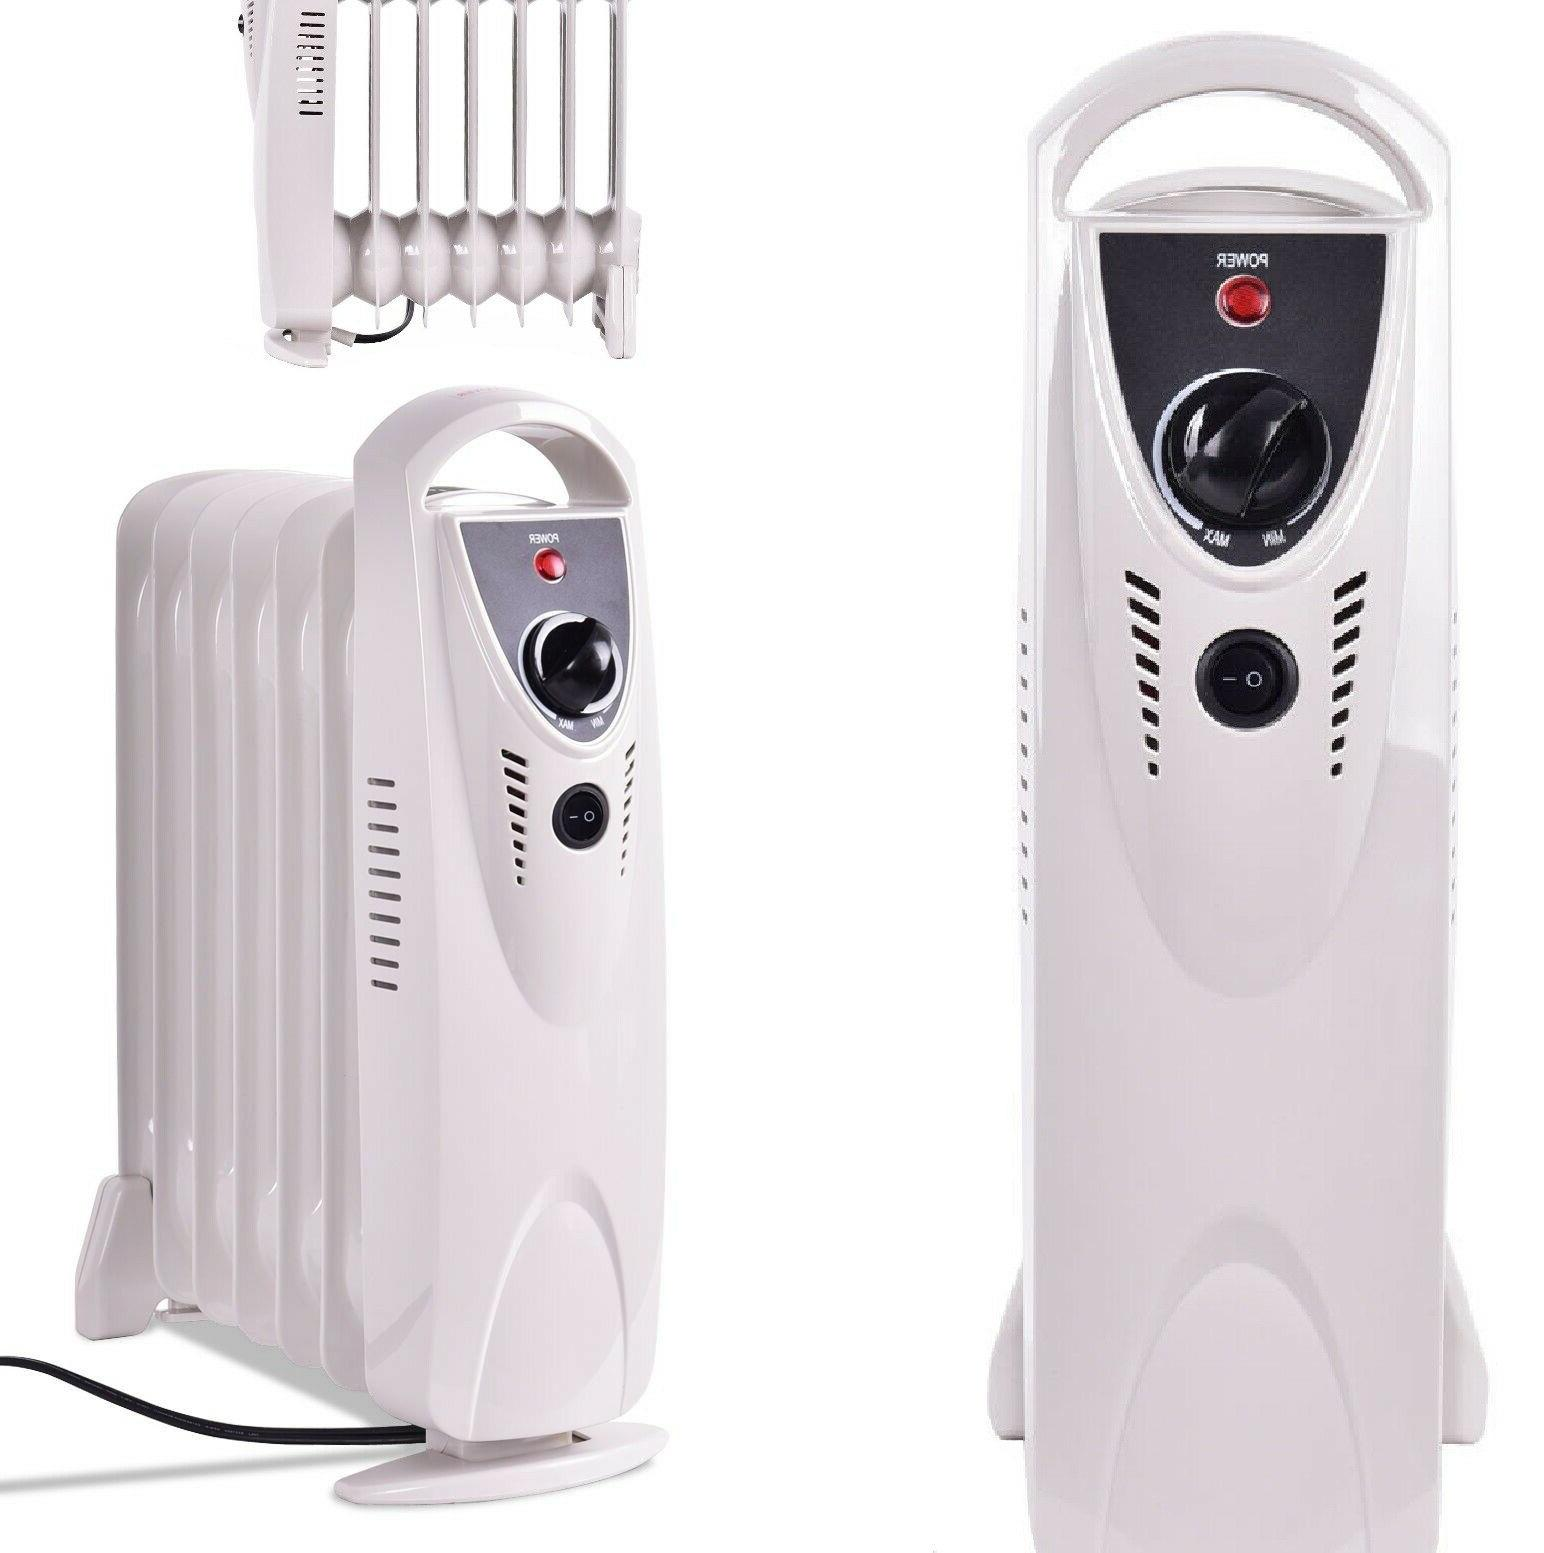 small space heater white electric radiator portable